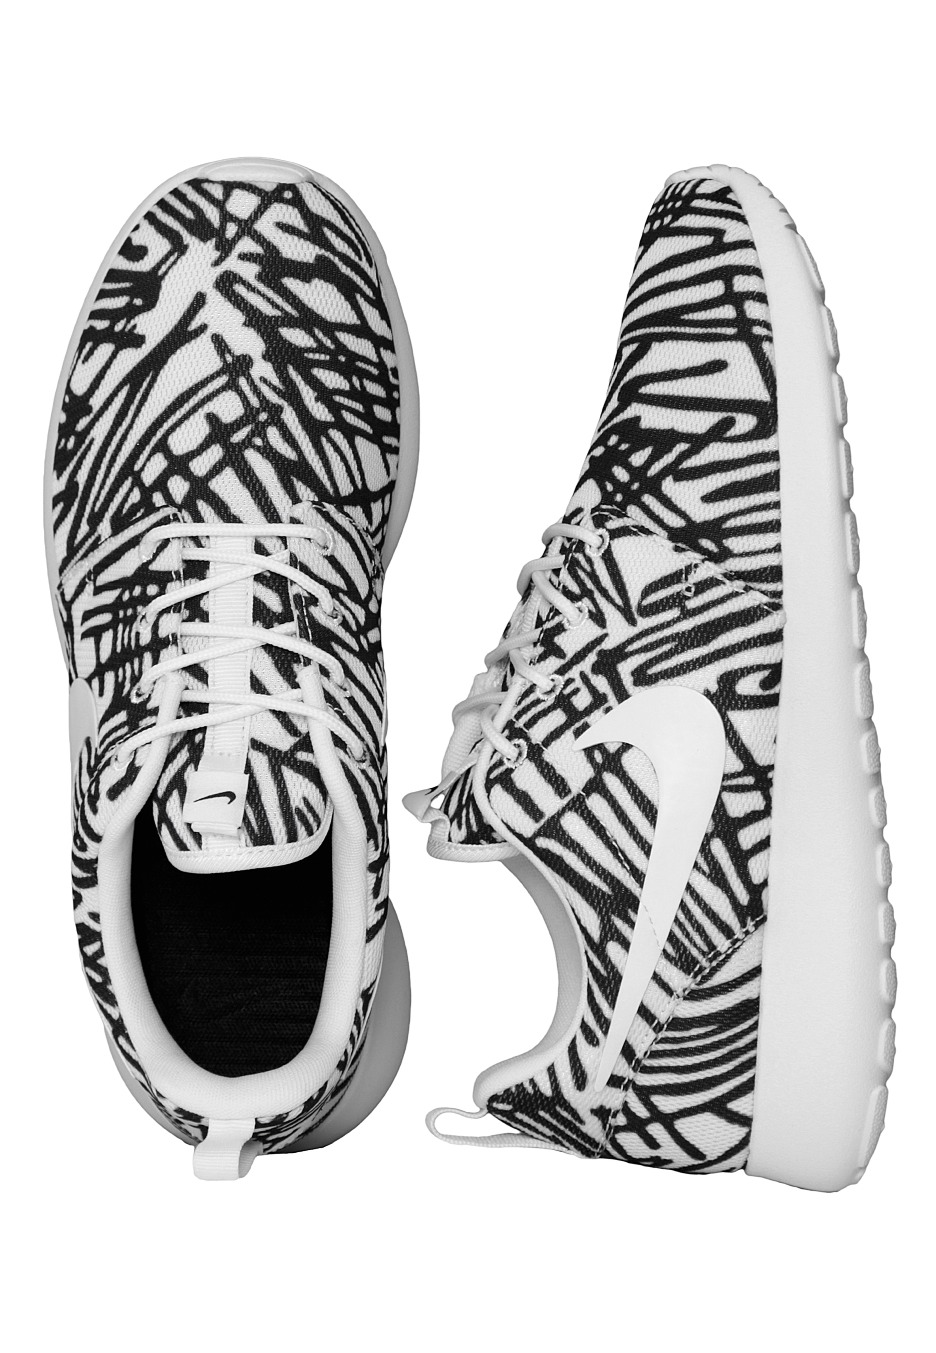 ad62be609245 Nike - Roshe One Print White White Black - Girl Shoes - Impericon.com UK